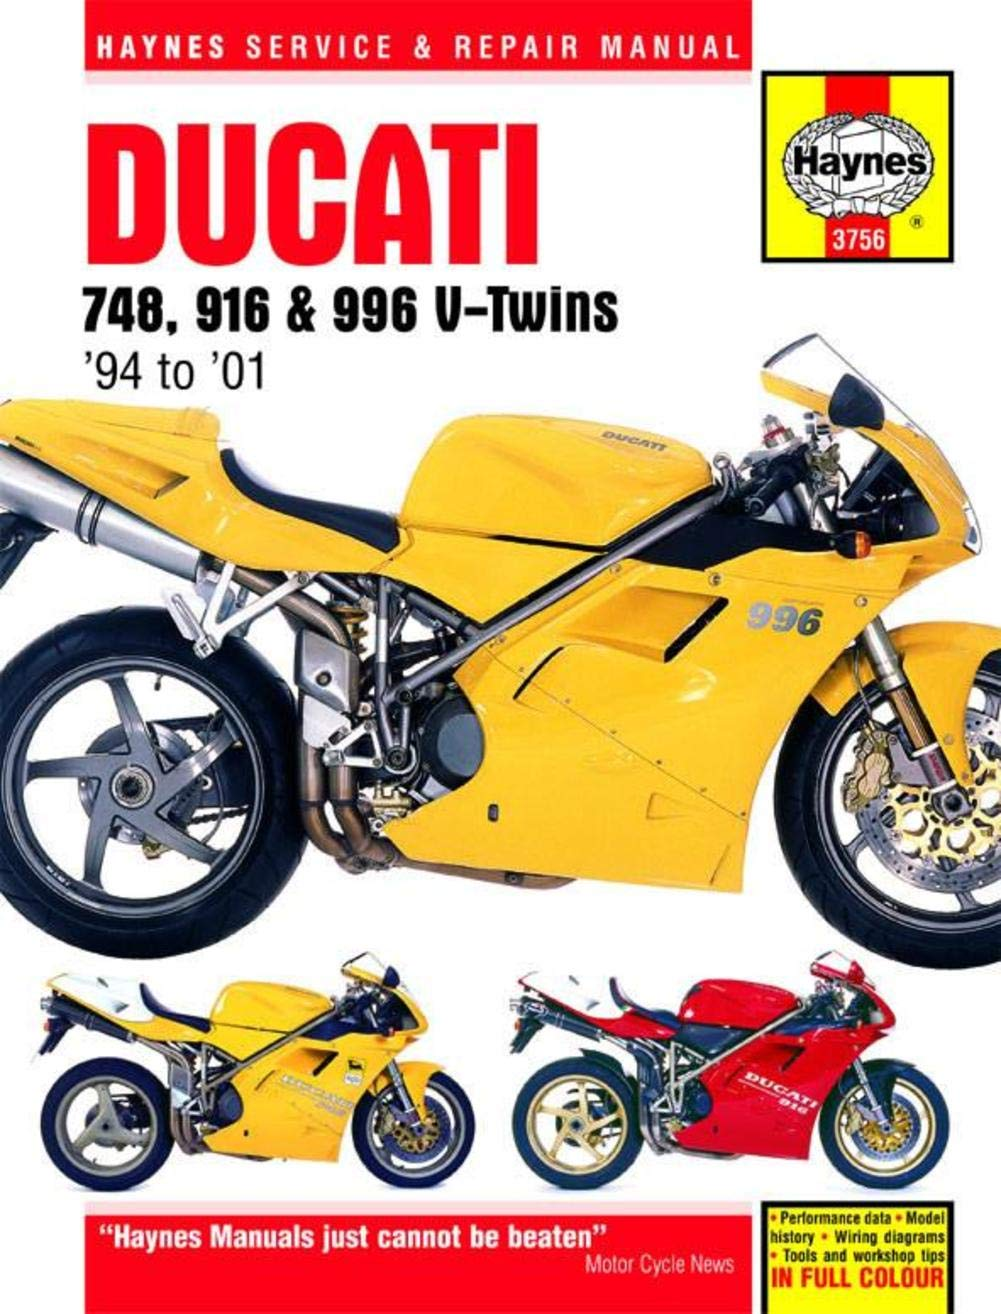 Ducati Wiring Diagram Service Manual